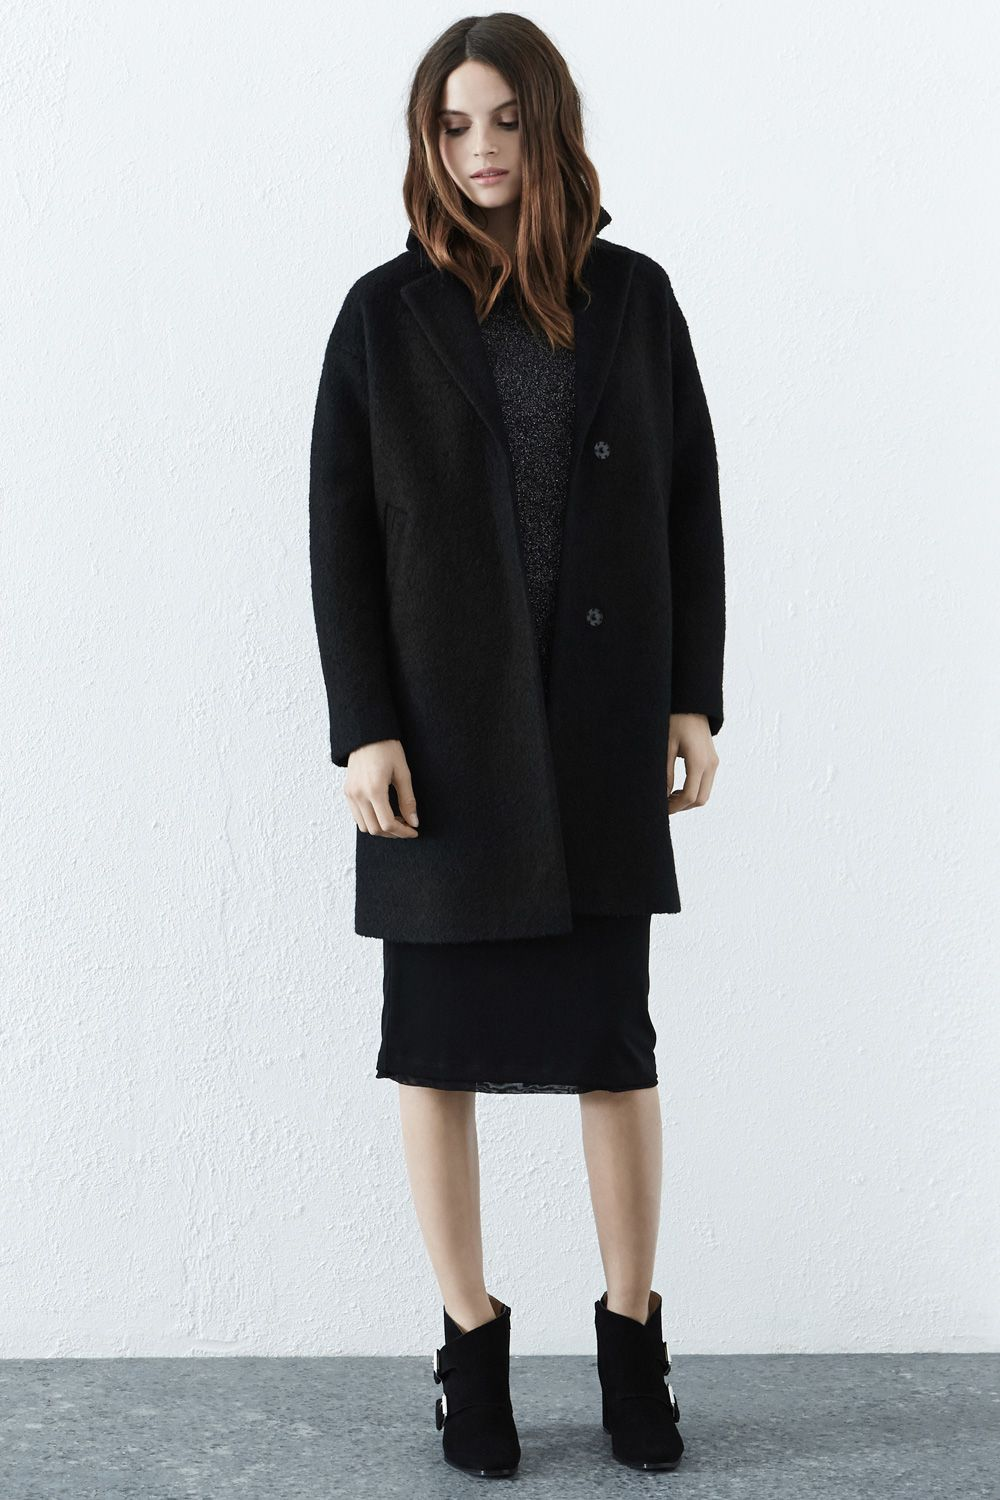 Jackets & Coats | Black BOUCLE COAT | Warehouse | It's a good look ...